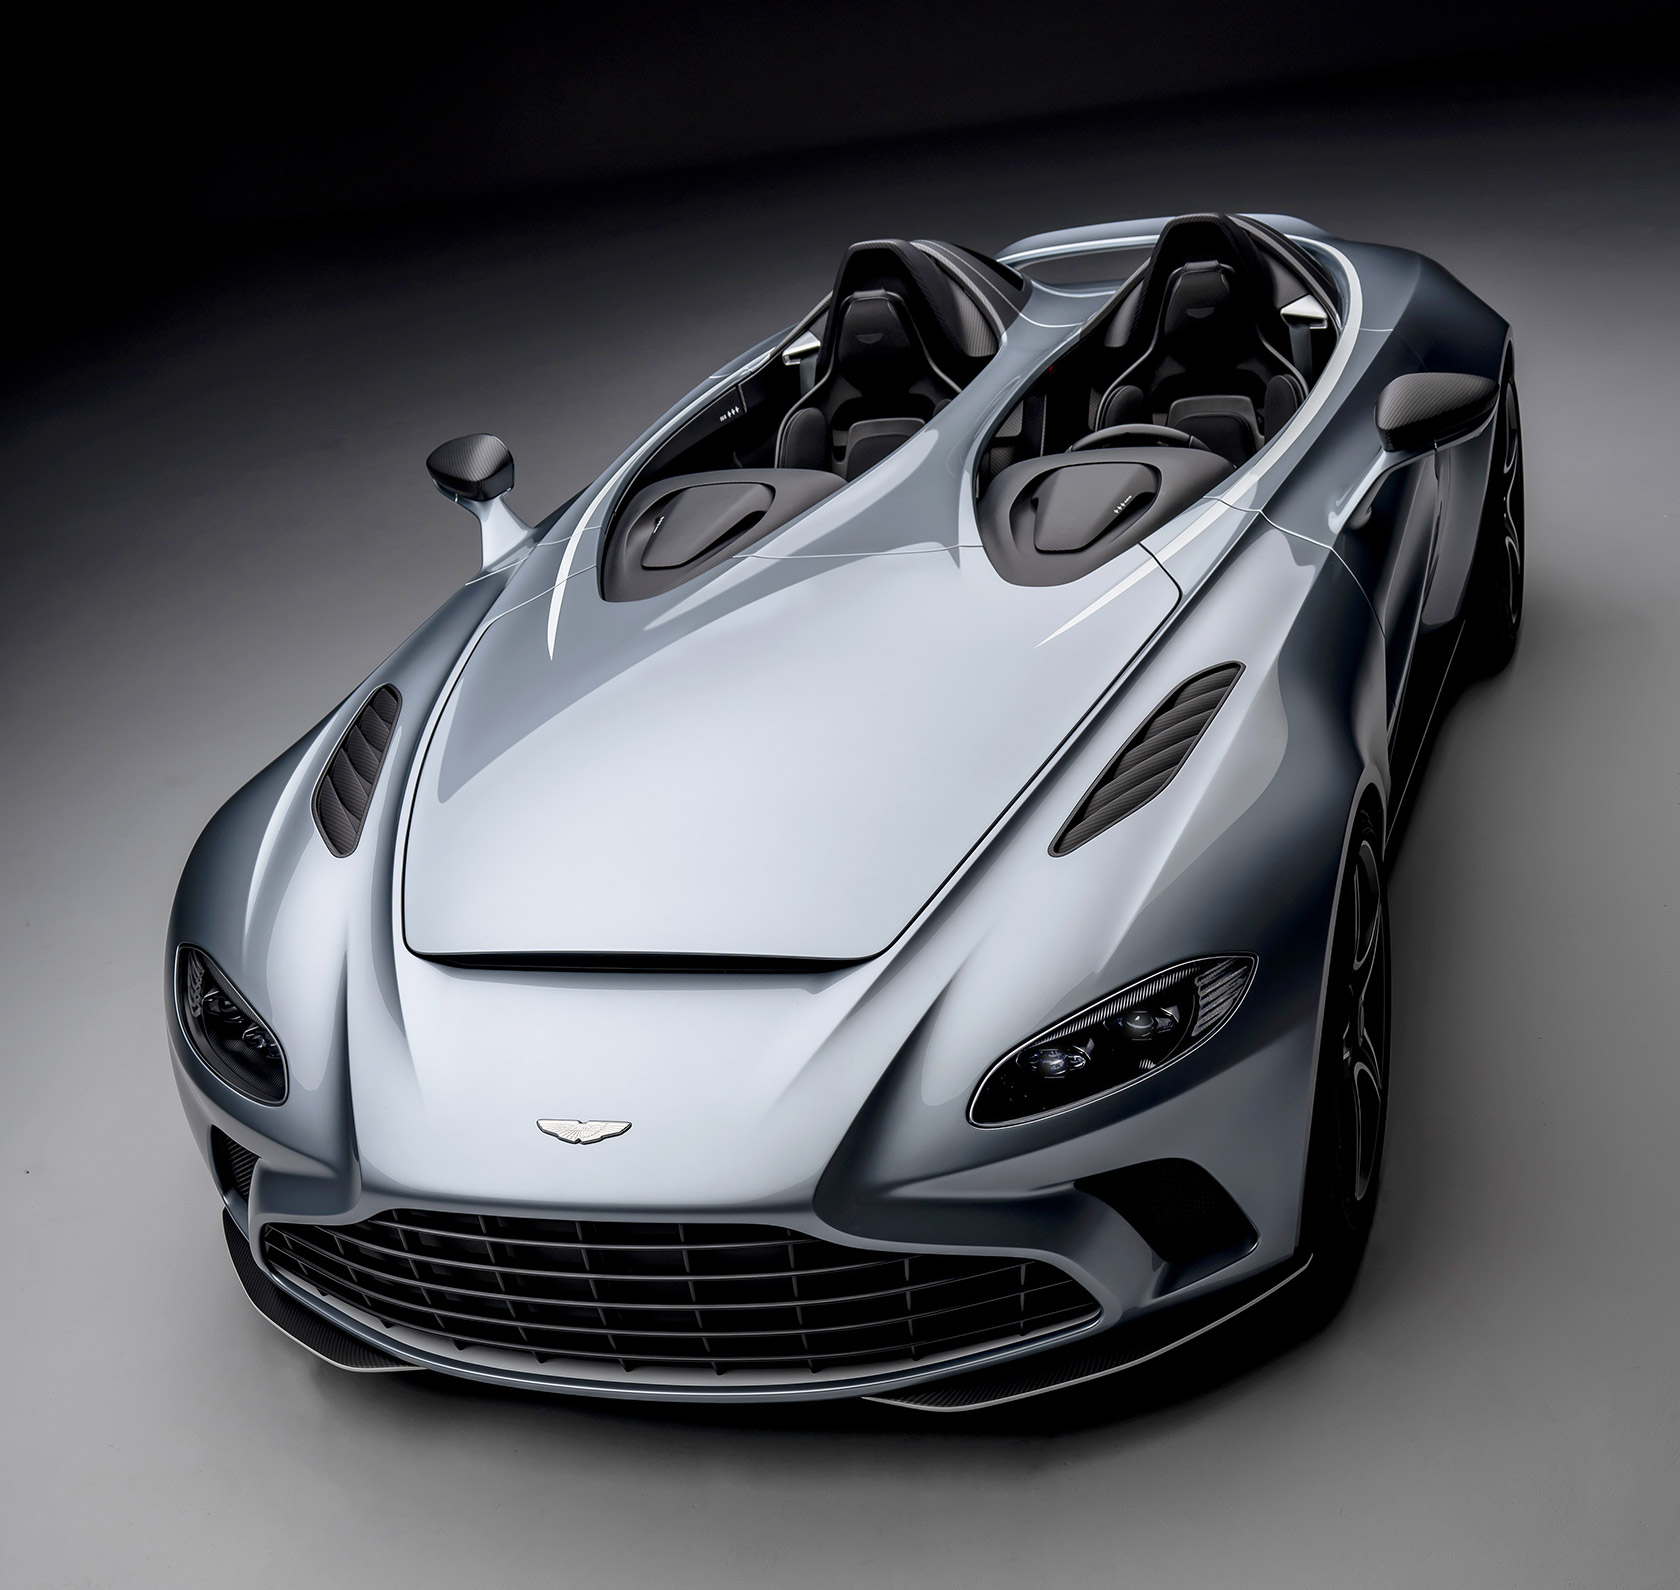 Aston Martin V12 Speedster Is Not A Concept, Will Go Into